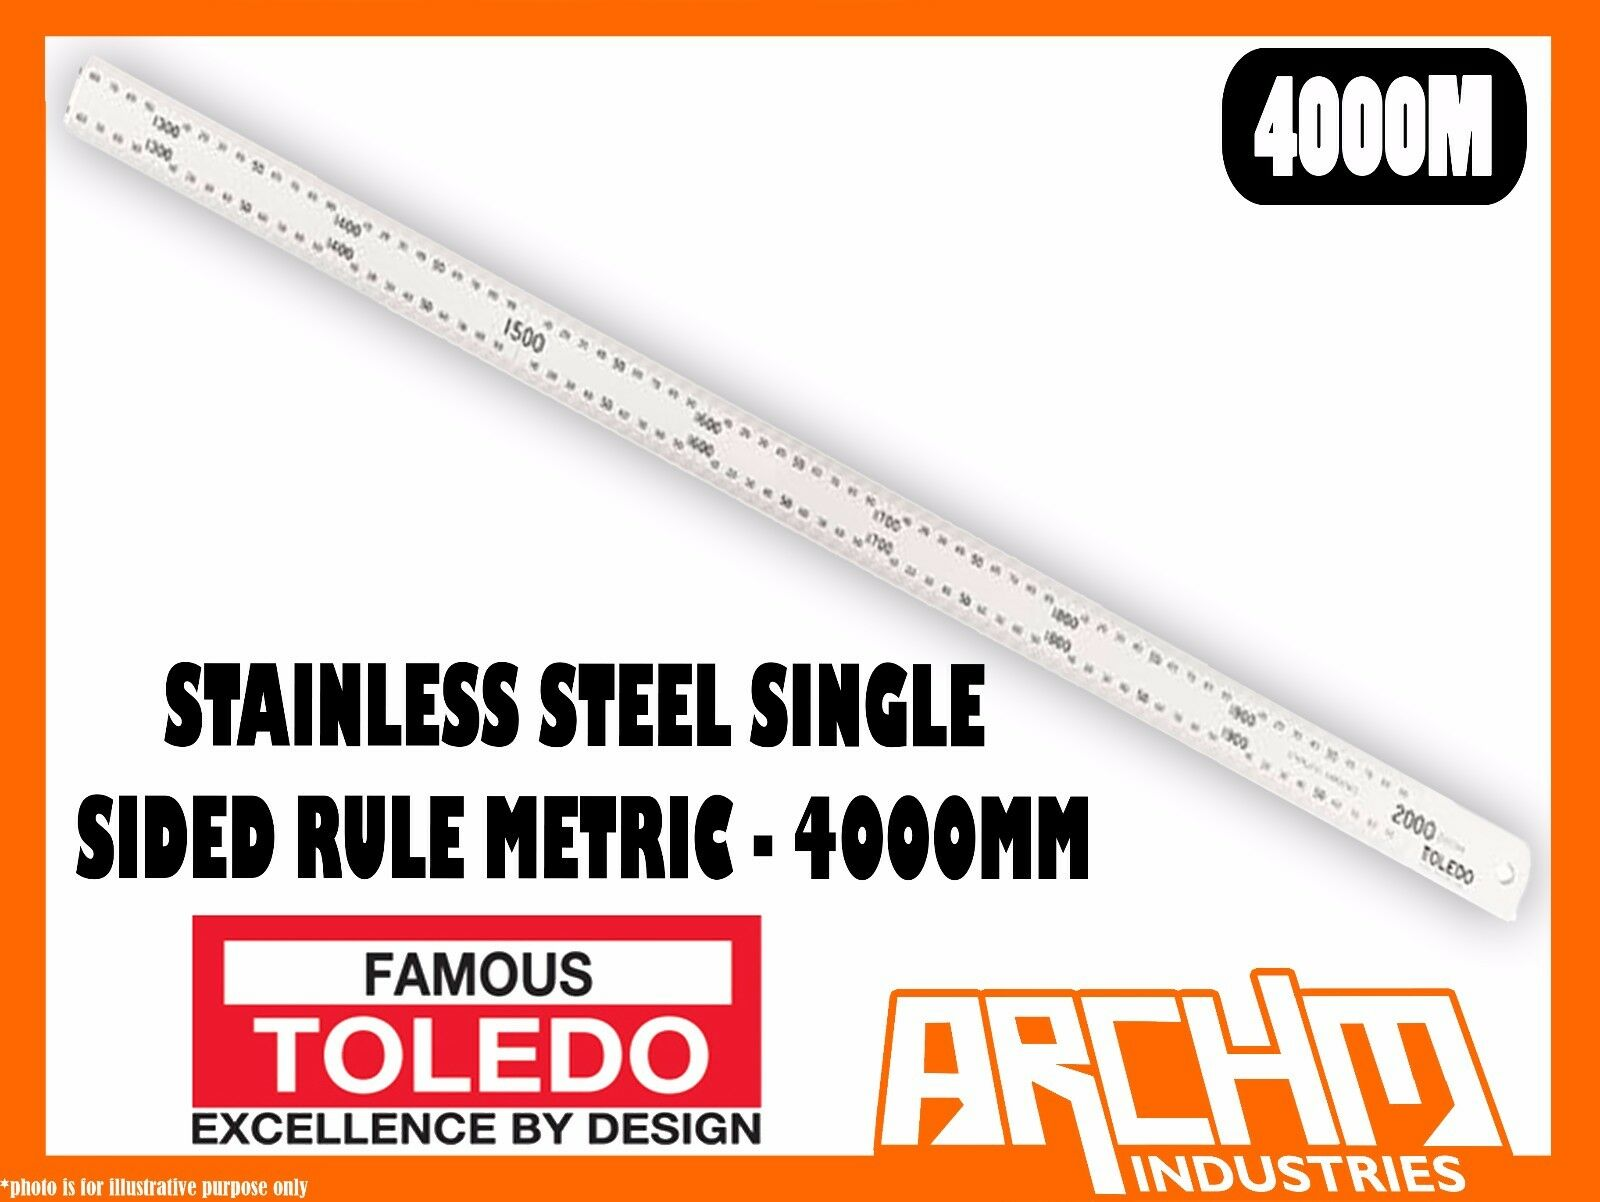 TOLEDO 4000M - STAINLESS STEEL SINGLE SIDED RULE METRIC - 4000MM - NUMERICAL